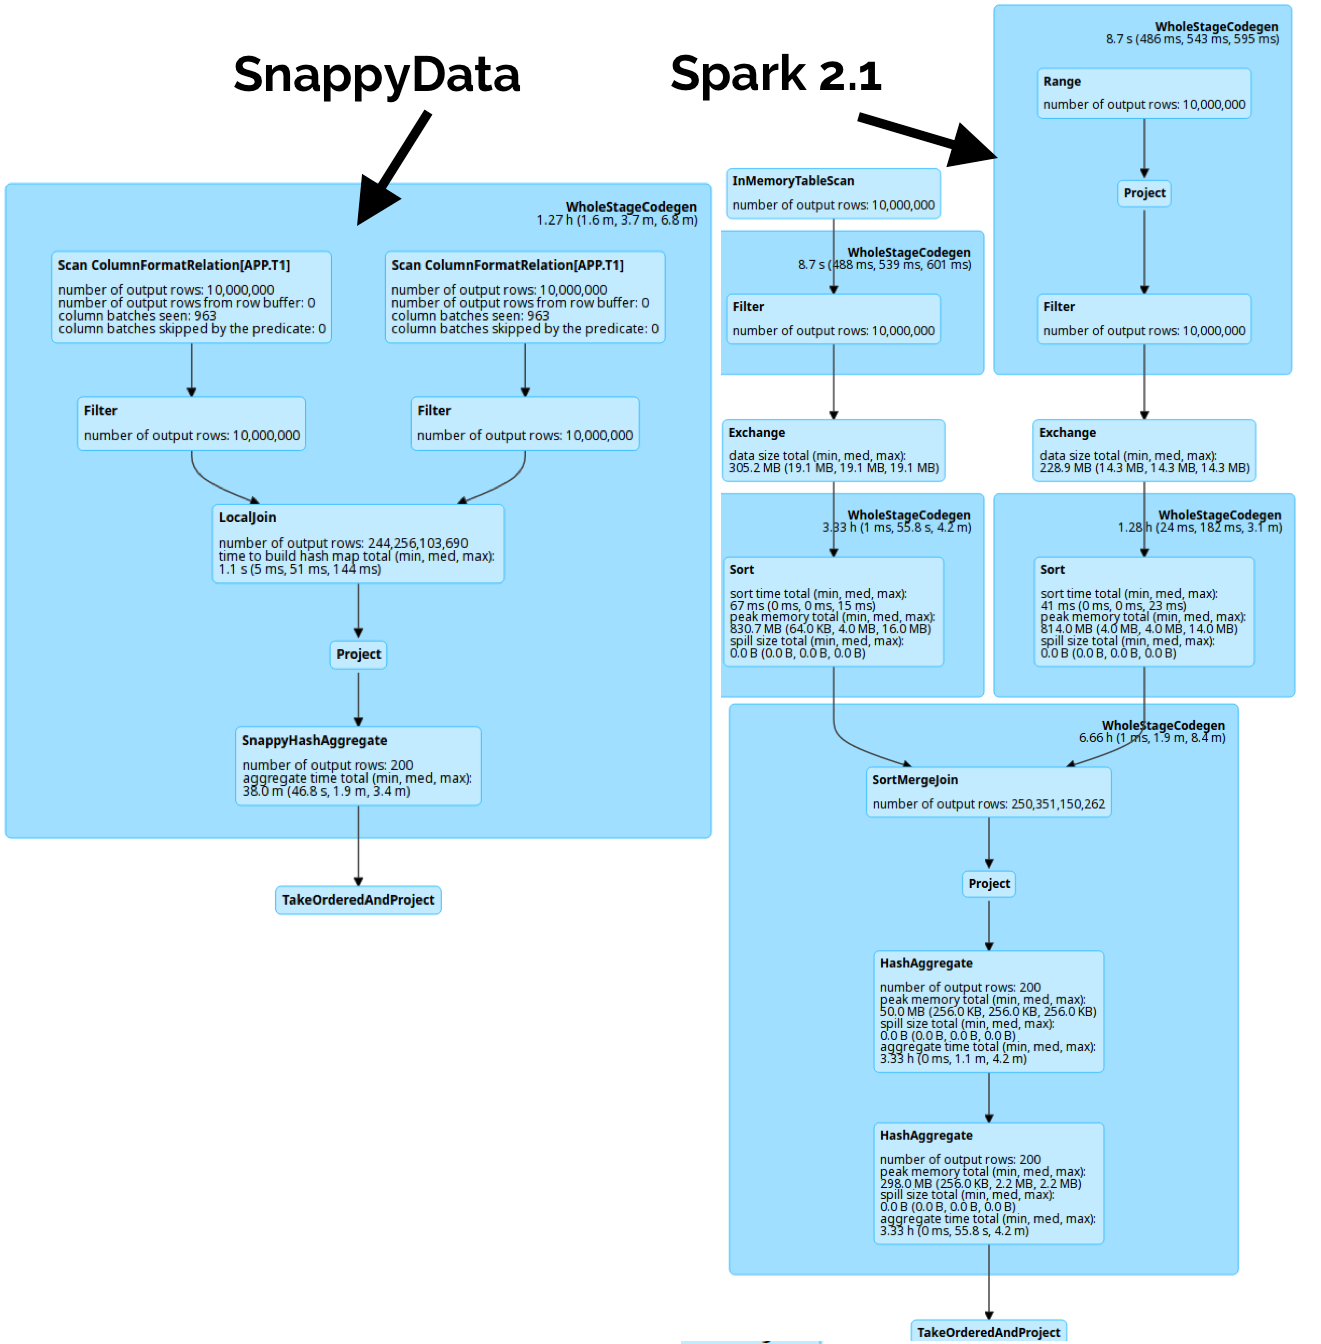 Running Spark SQL CERN queries 5x faster on SnappyData